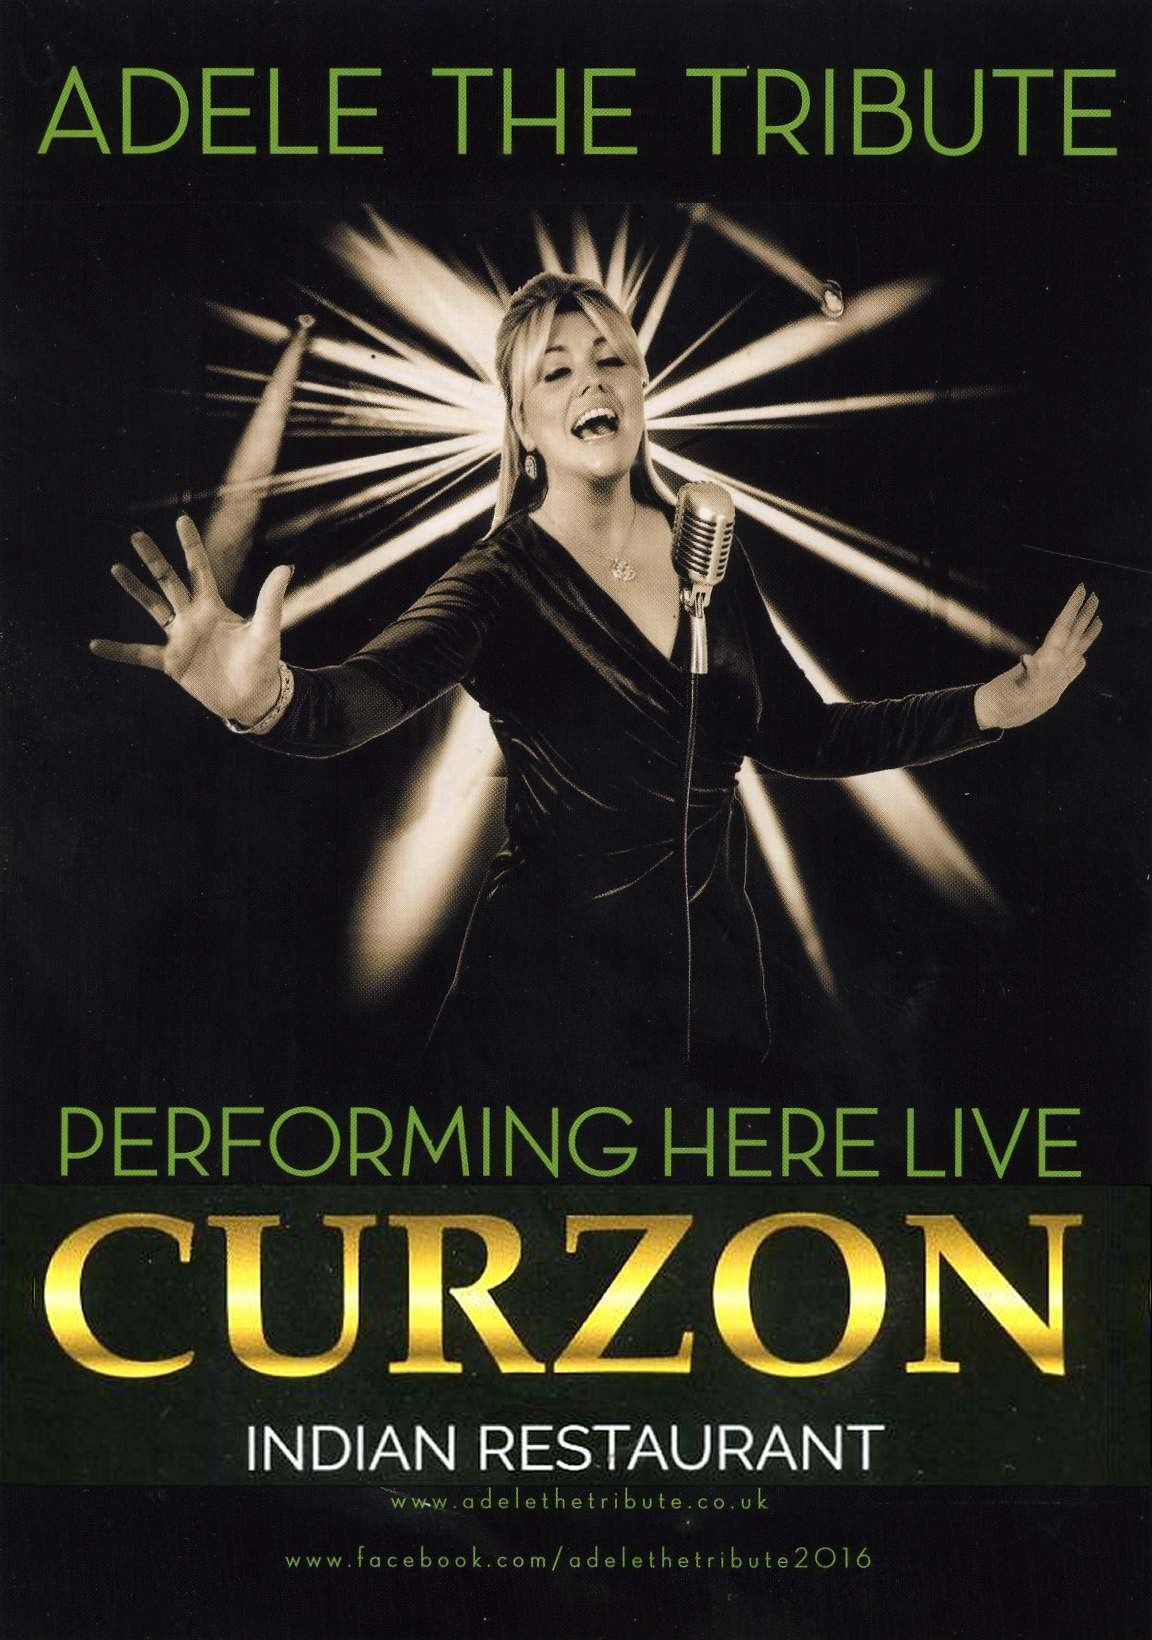 adele at the curzon